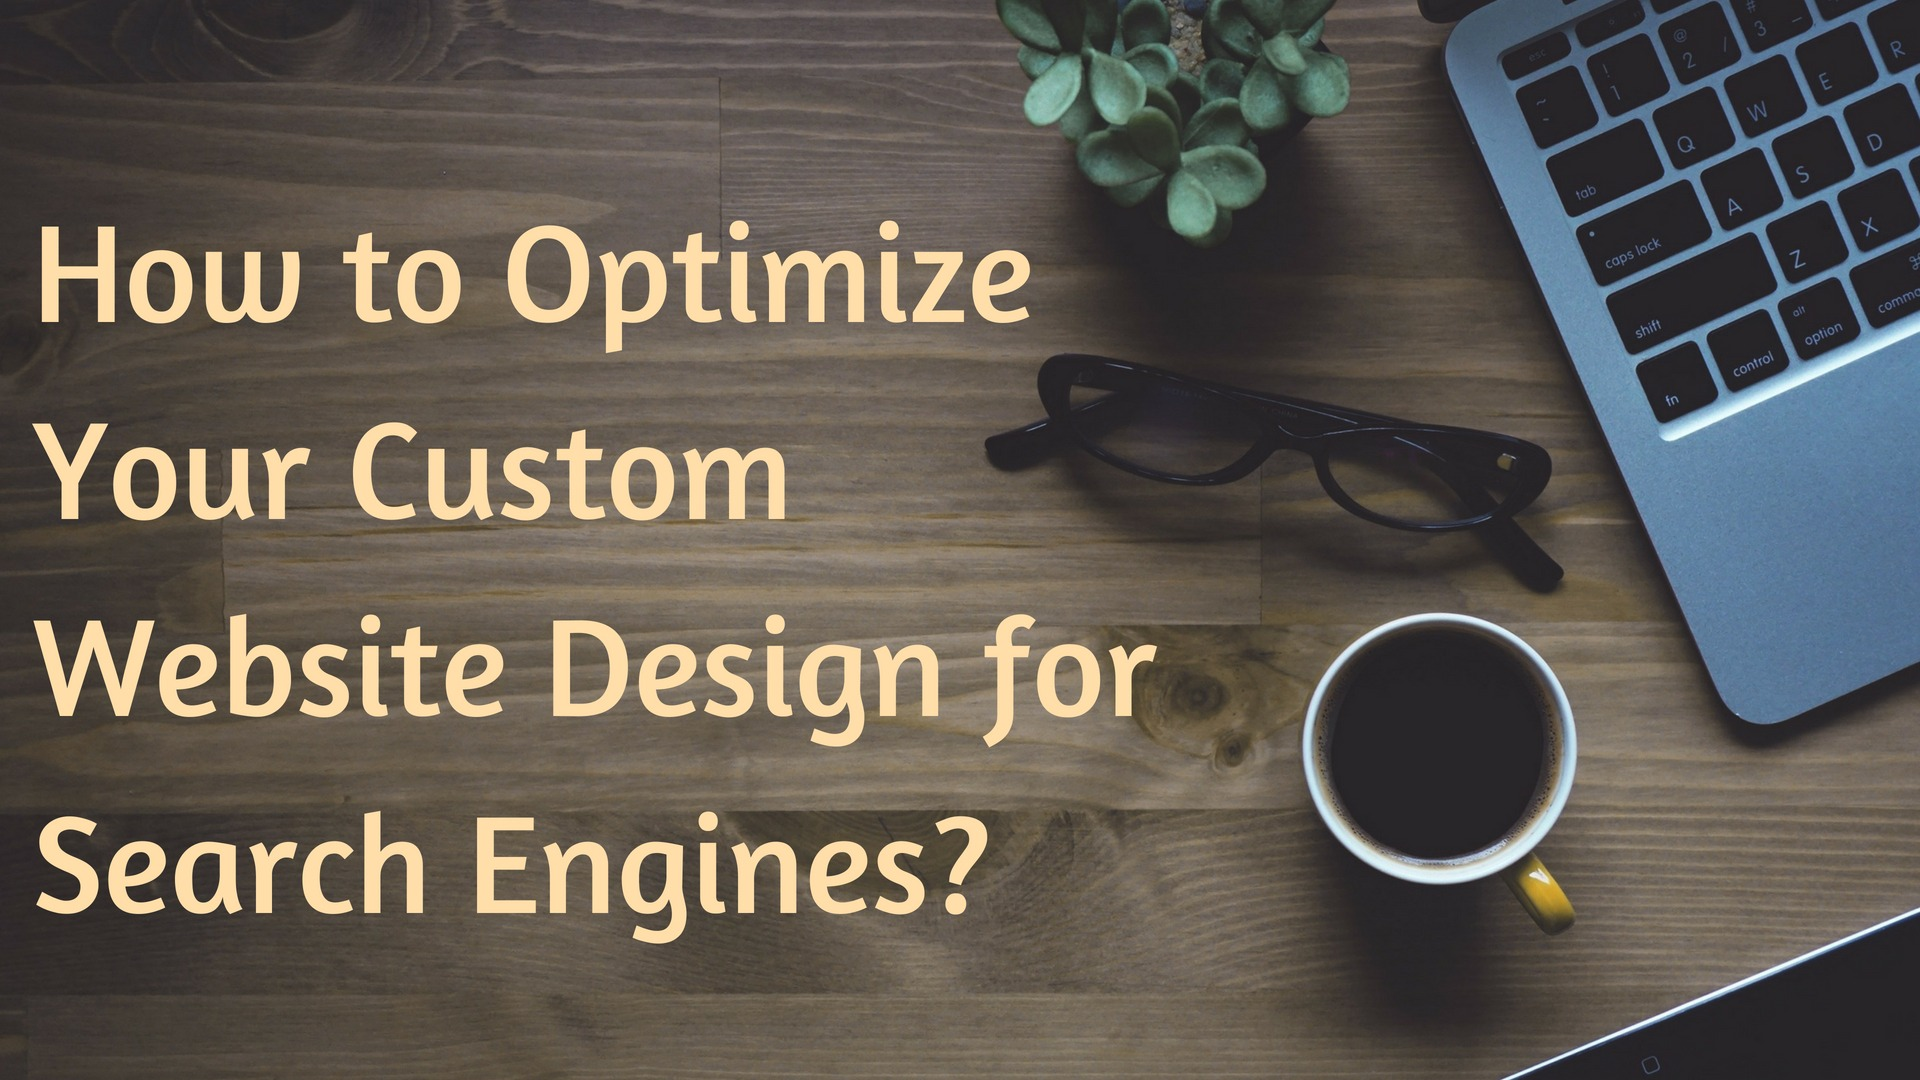 How to Optimize Your Custom Website Design for Search Engines